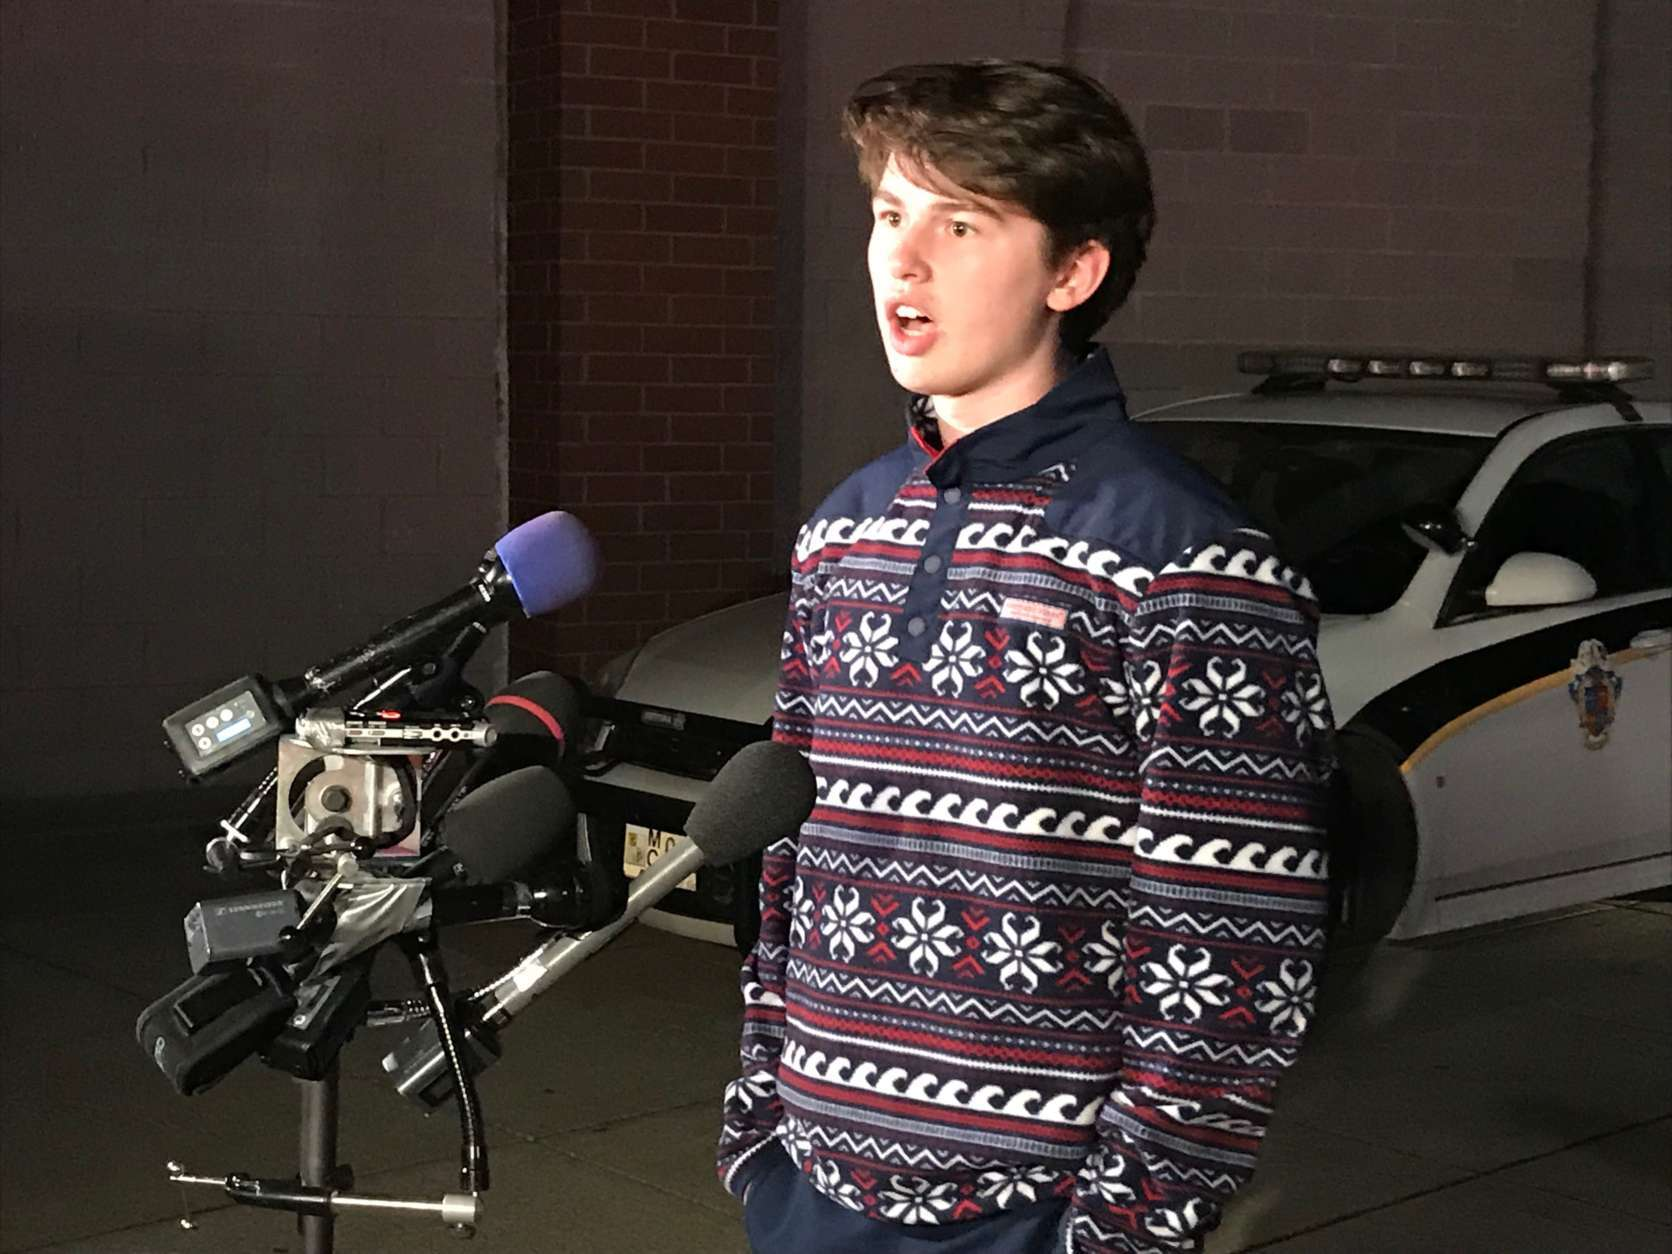 Aidan Kilpatrick, a junior at Einstein High School, speaks Monday night after Parkland, Florida, students met with him and others about school violence. (WTOP/Michelle Basch)